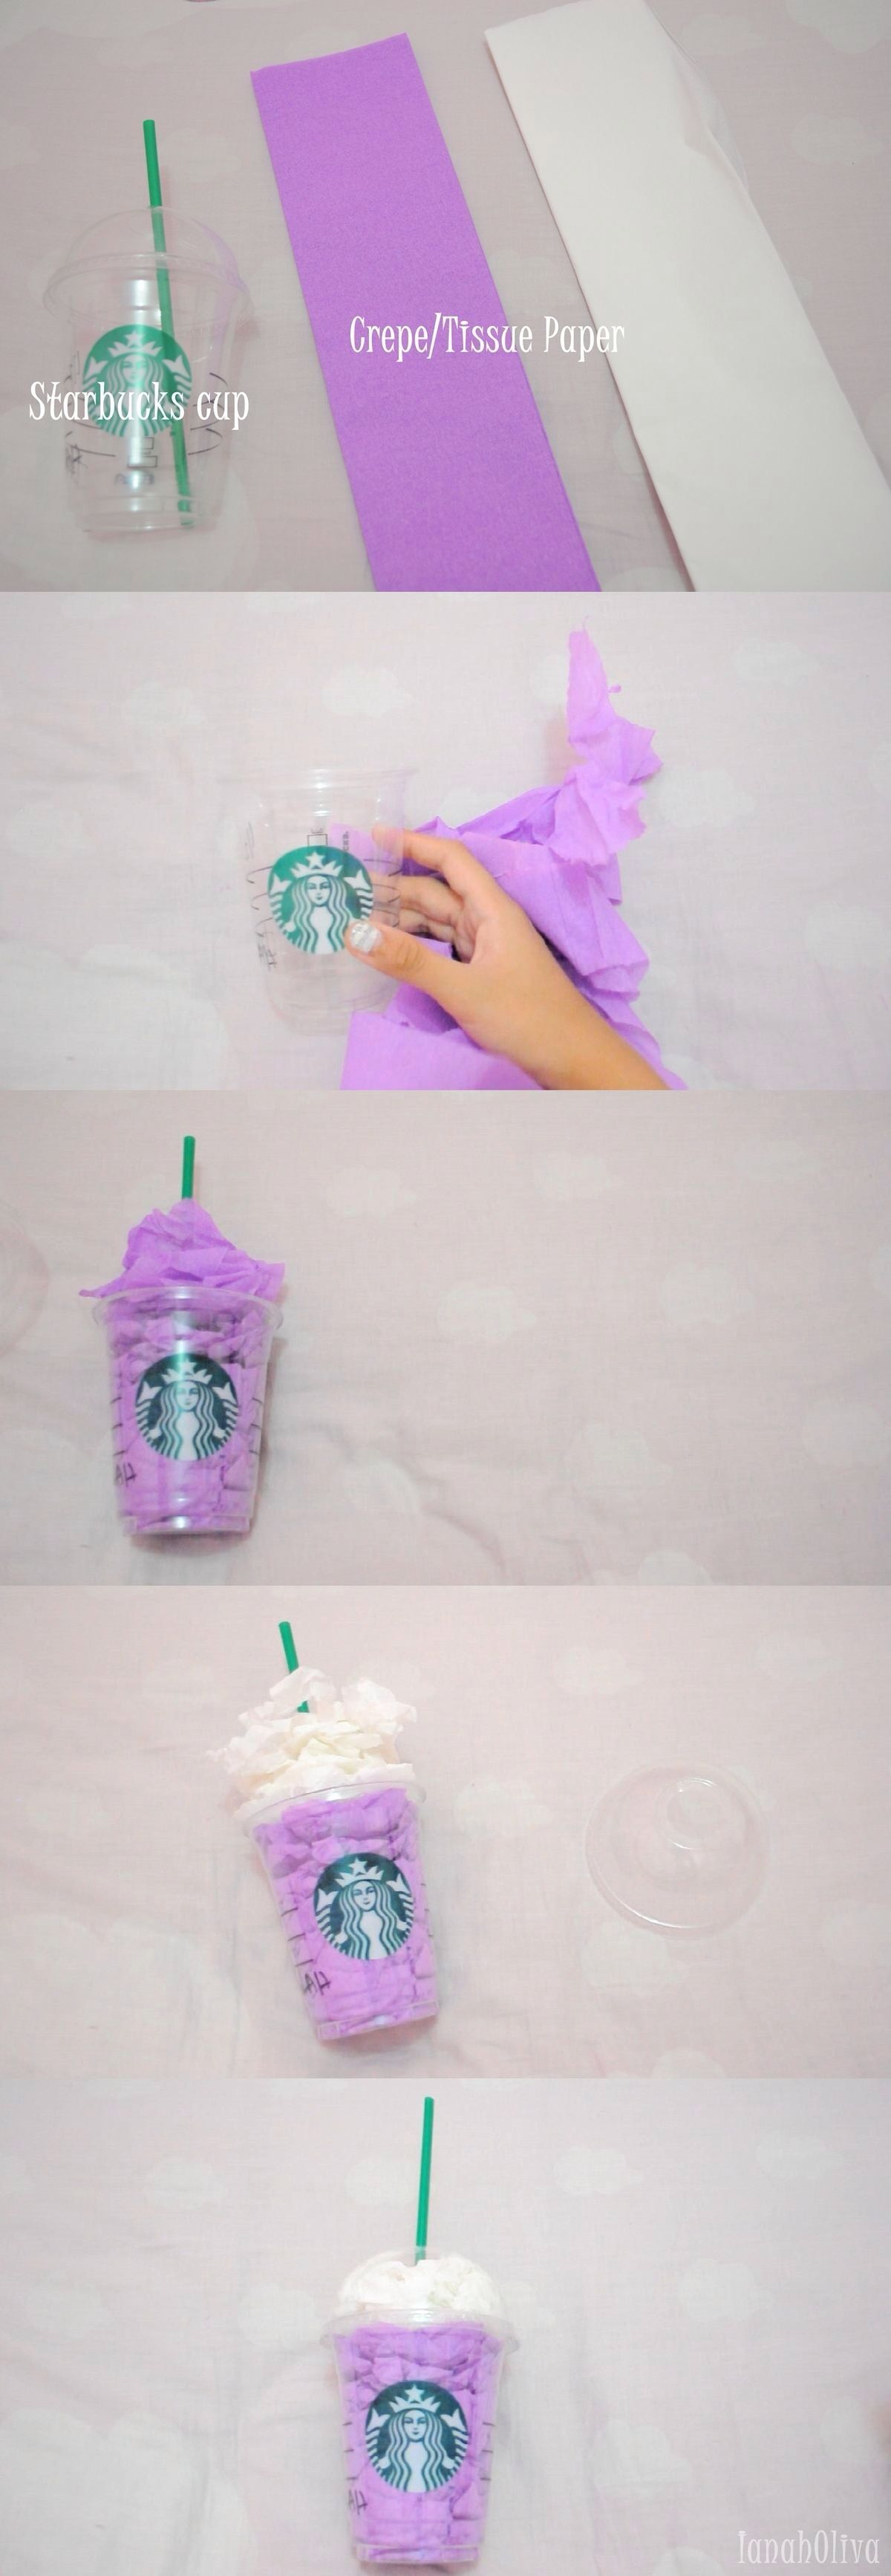 Diy Room Decor Starbucks Cup Diy Craft For Teens Decorating Room